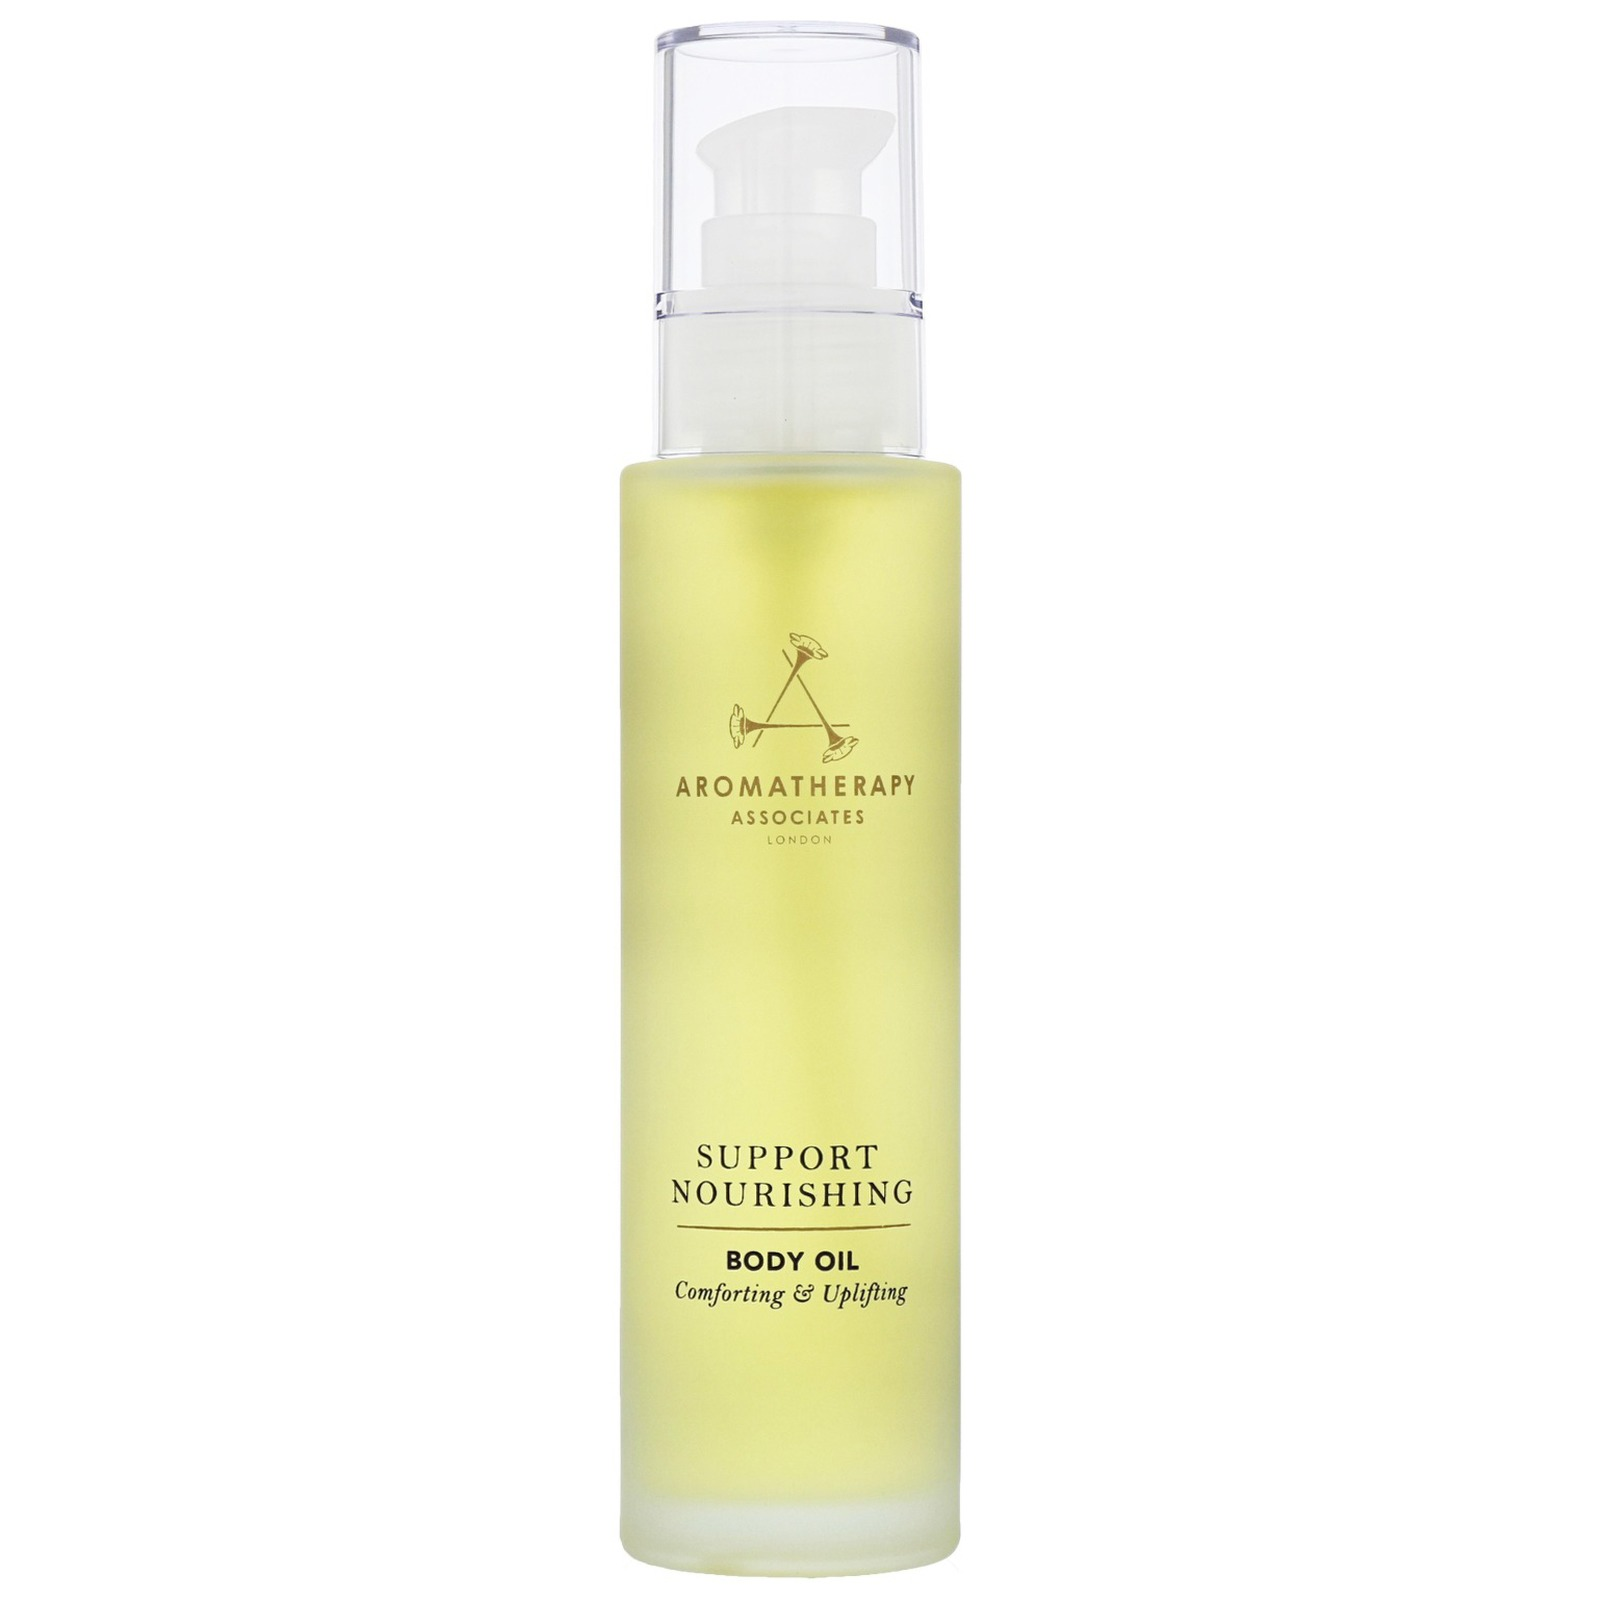 Aromatherapy Associates Bath & Body Support Nourishing Body Oil 100ml